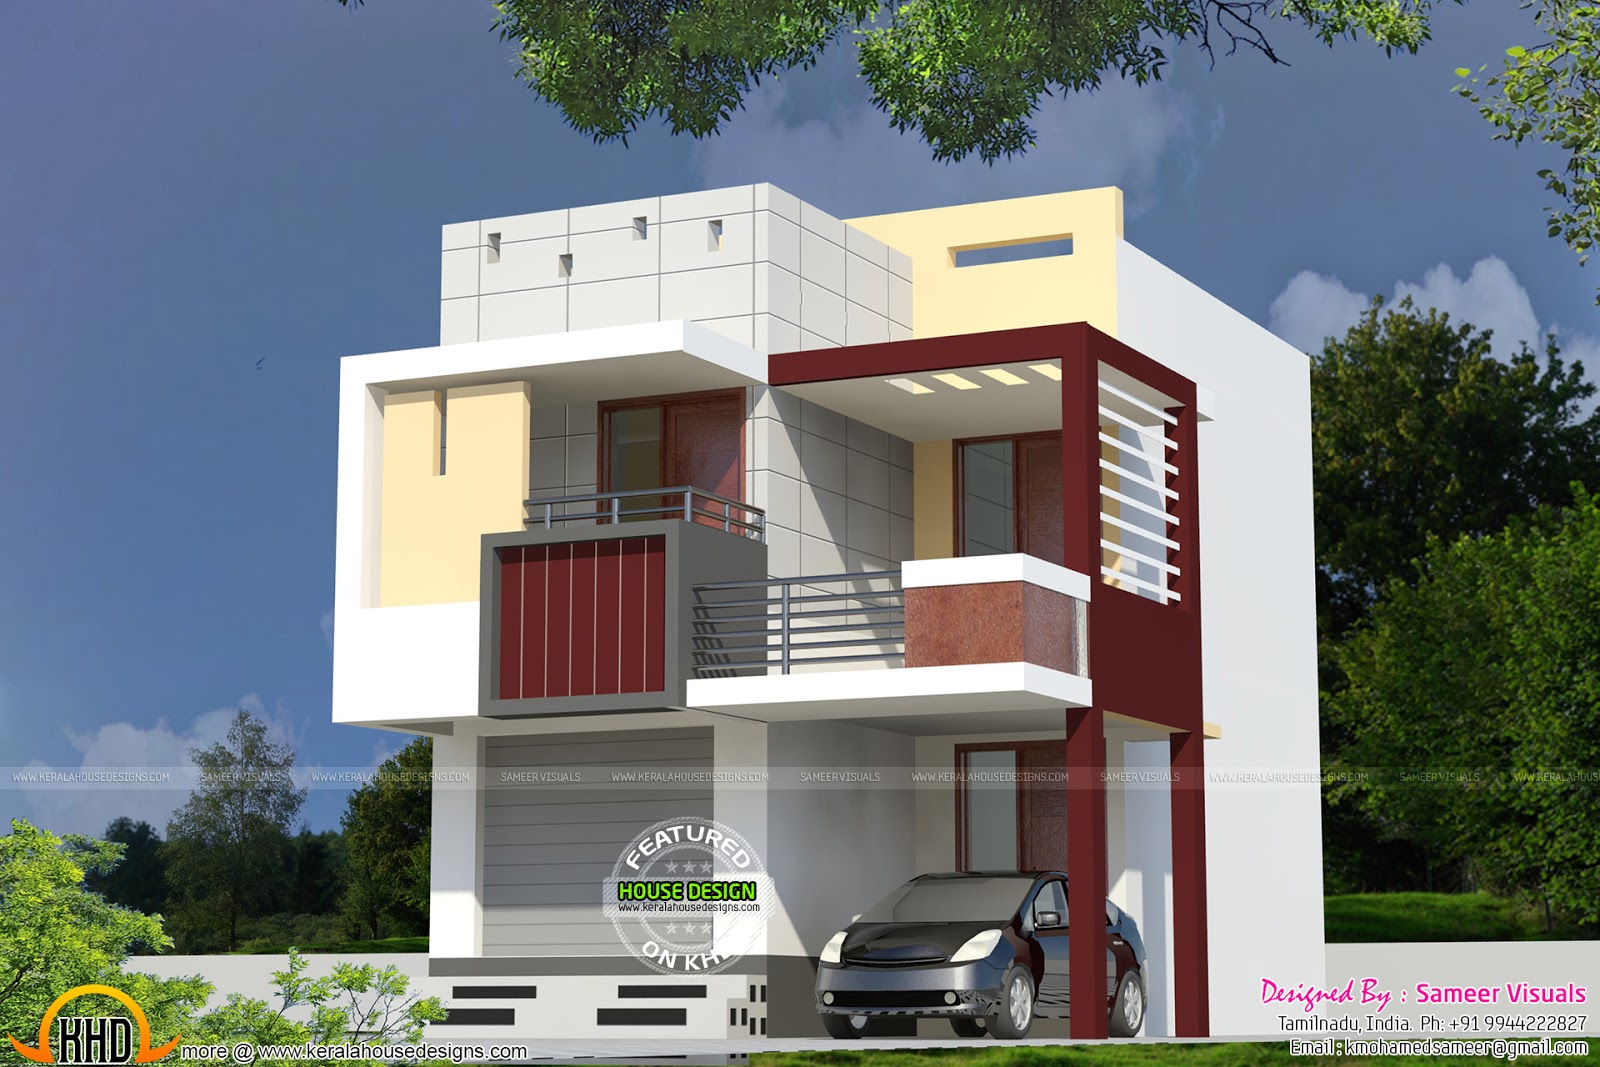 Very small double storied house kerala home design and for South indian small house designs